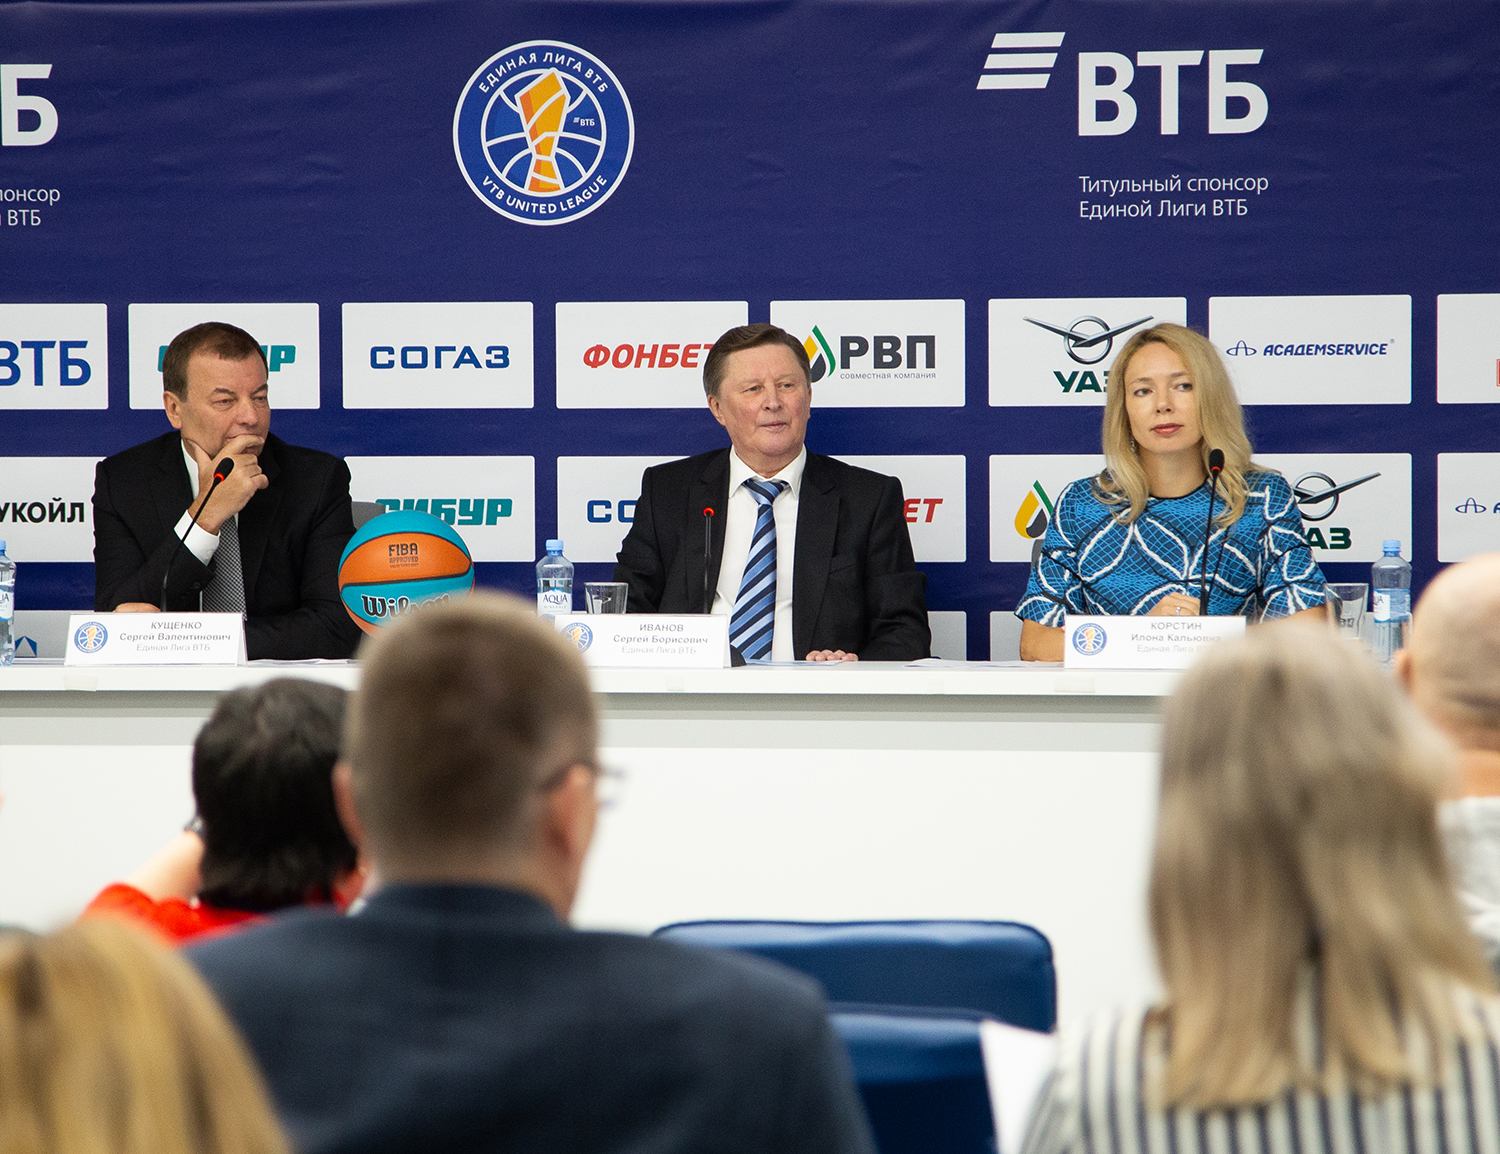 2019/20 season press conference at VTB Arena in Moscow